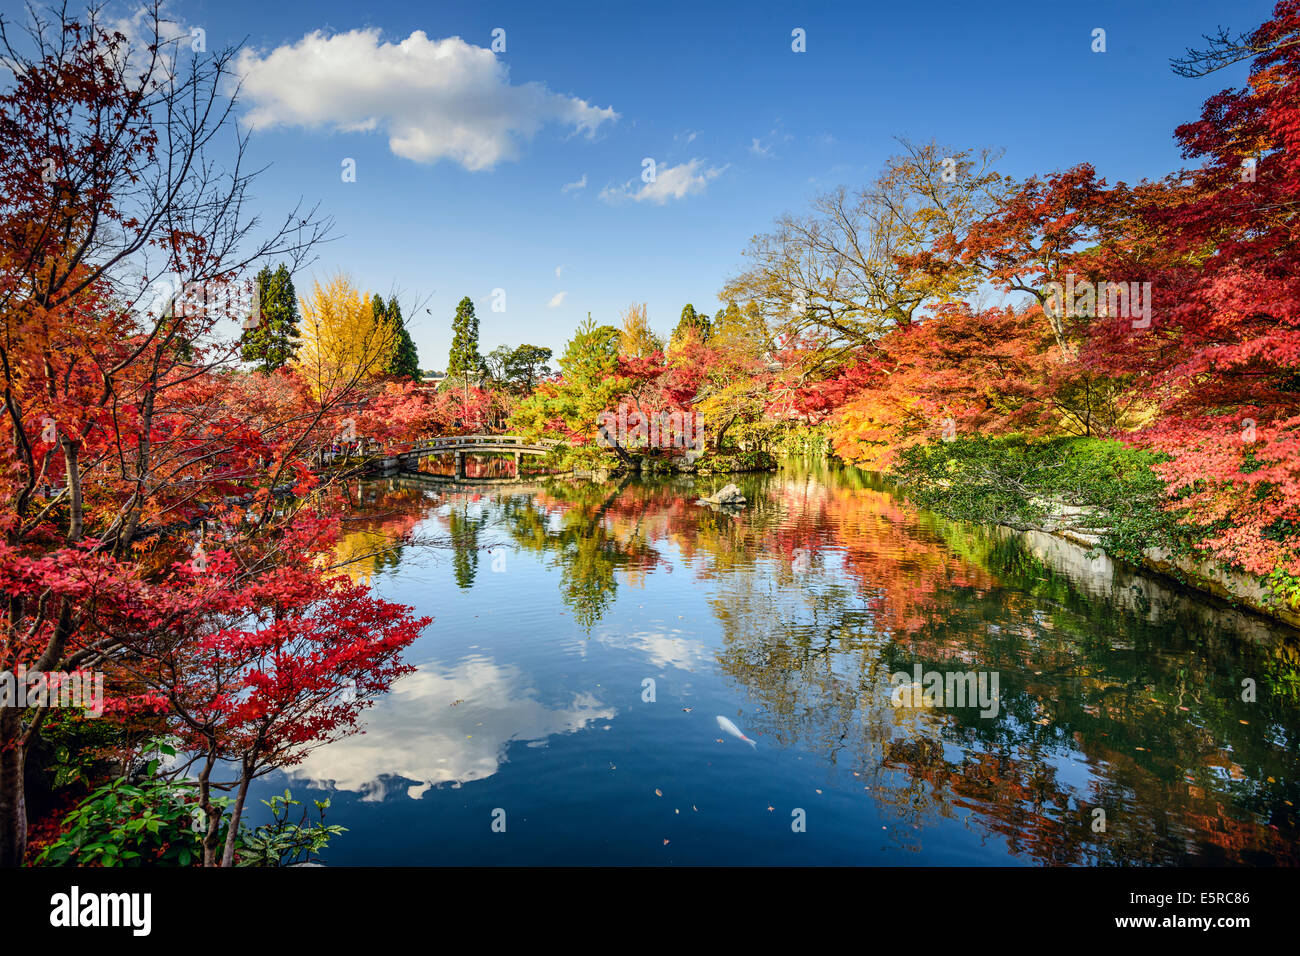 Kyoto, Japan fall foliage at Eikando Shrine Garden. - Stock Image